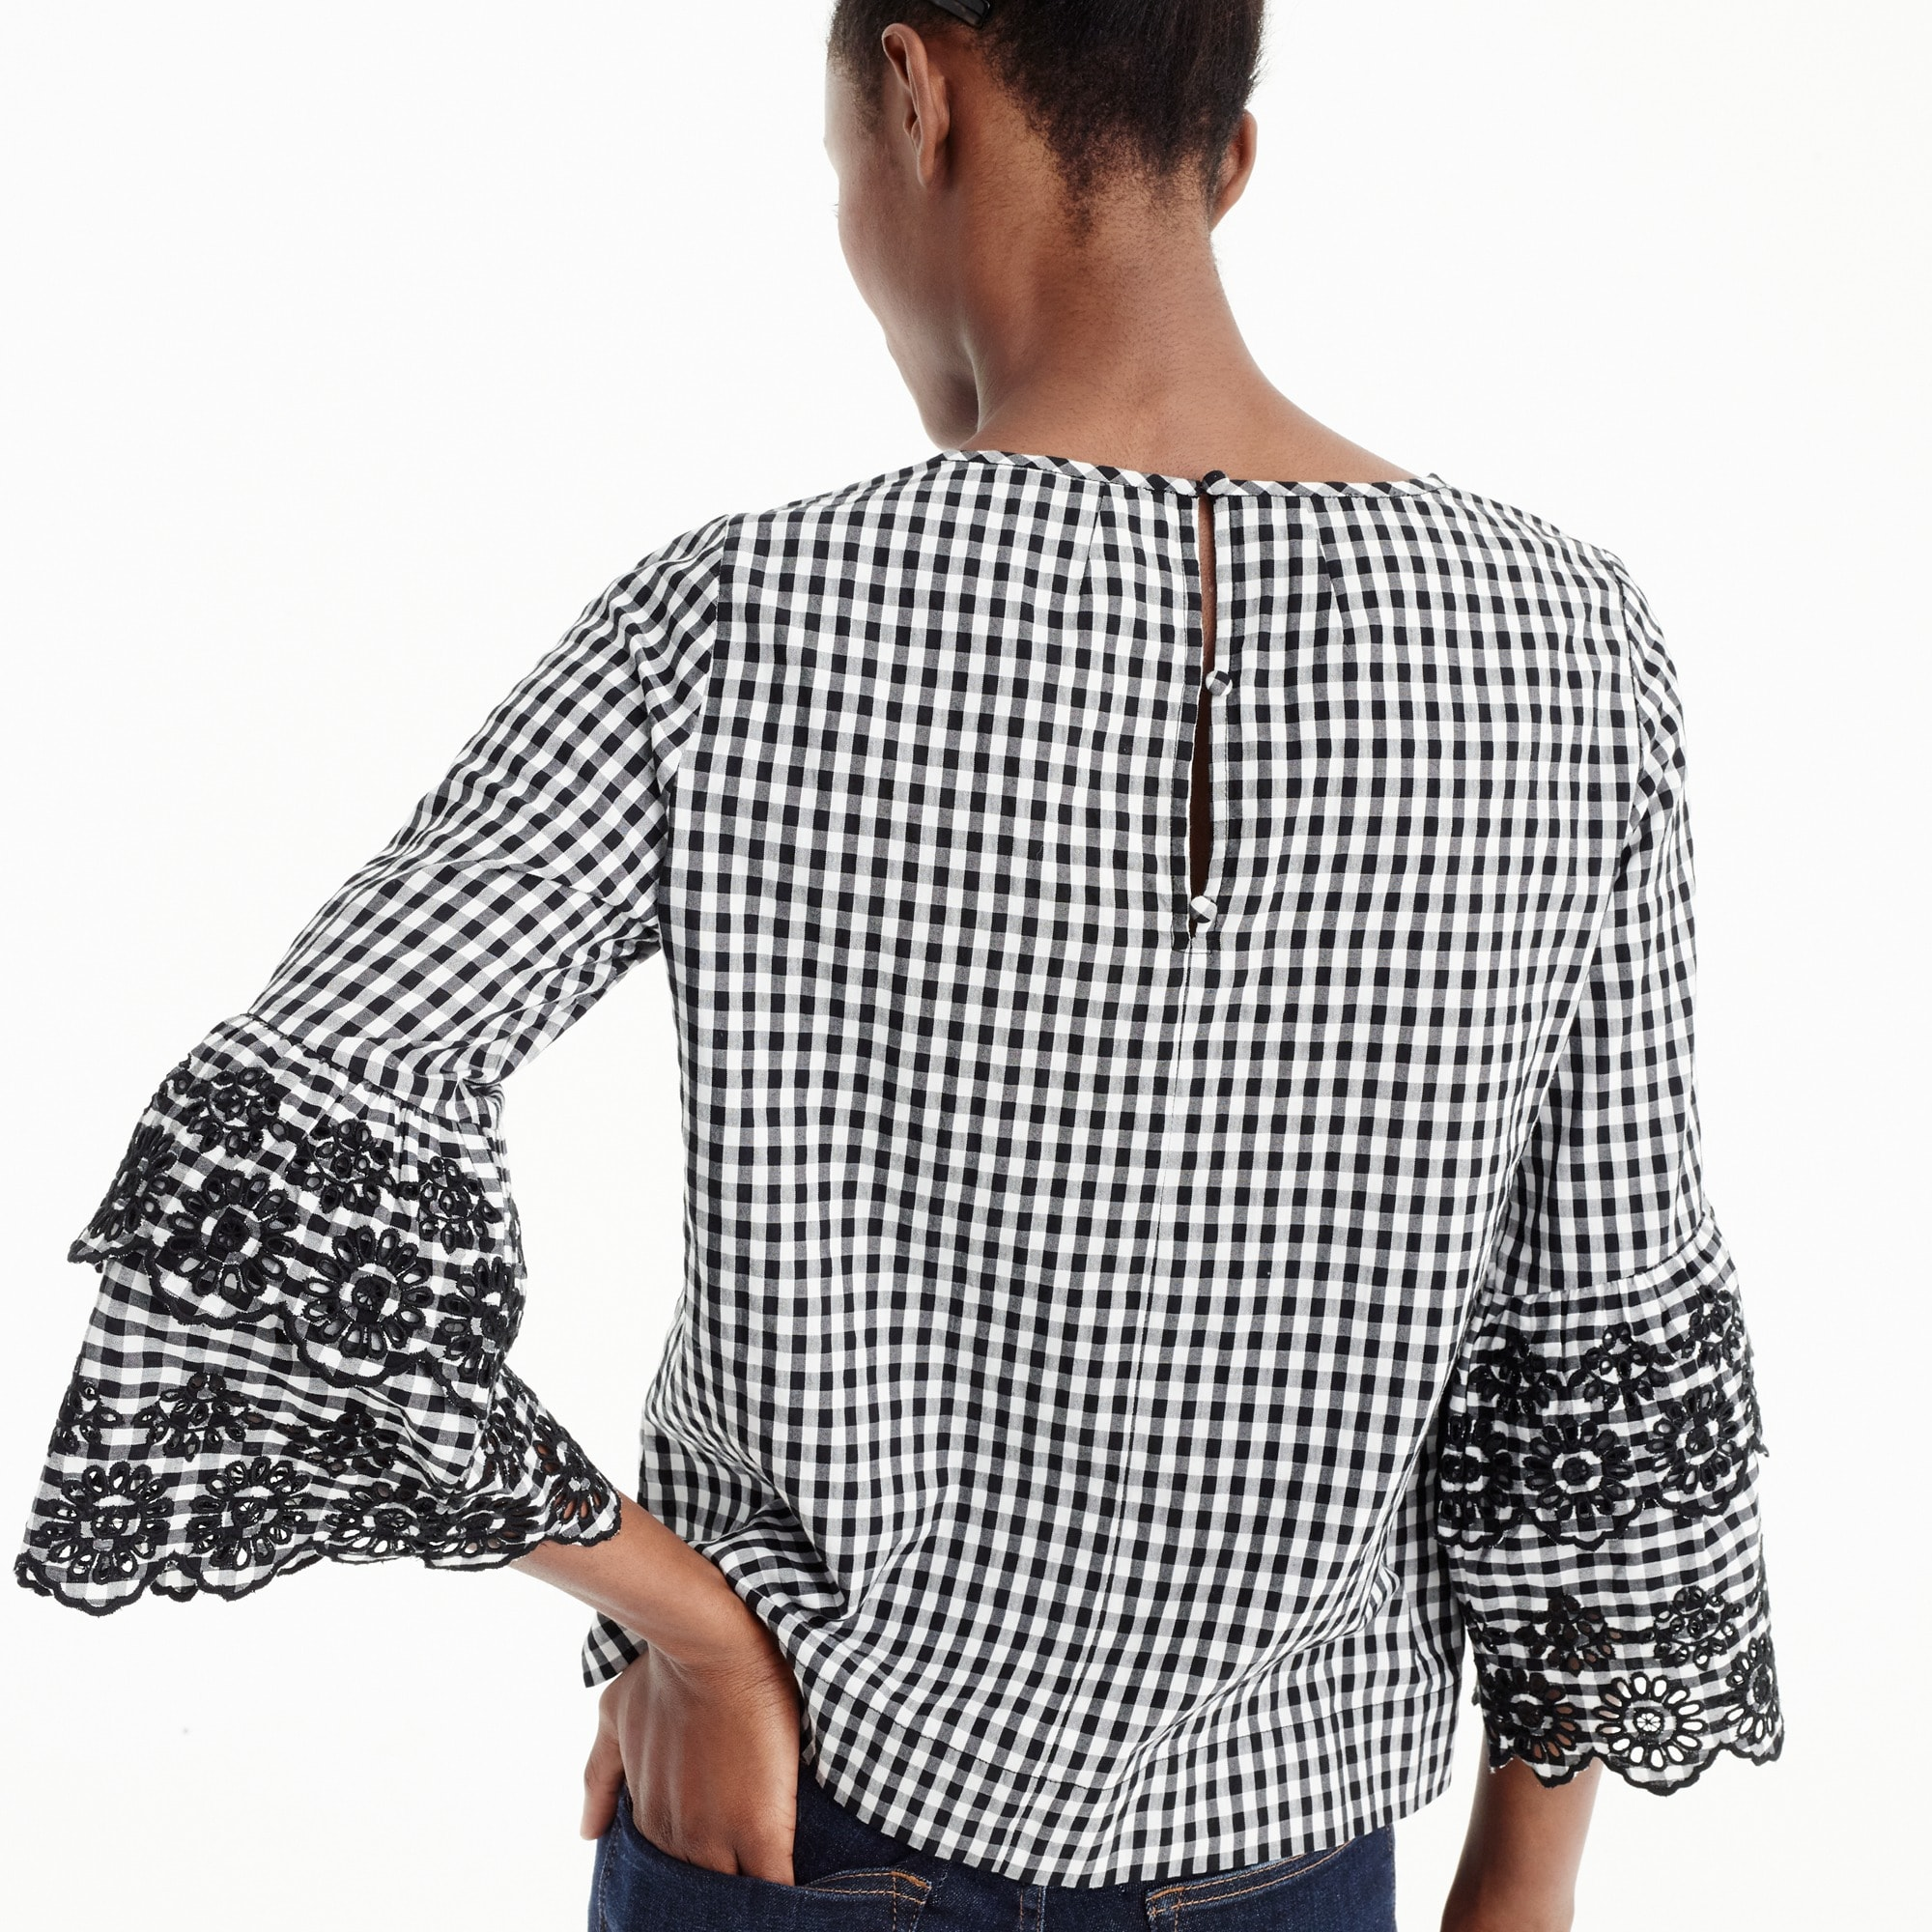 Tiered bell-sleeve top in gingham